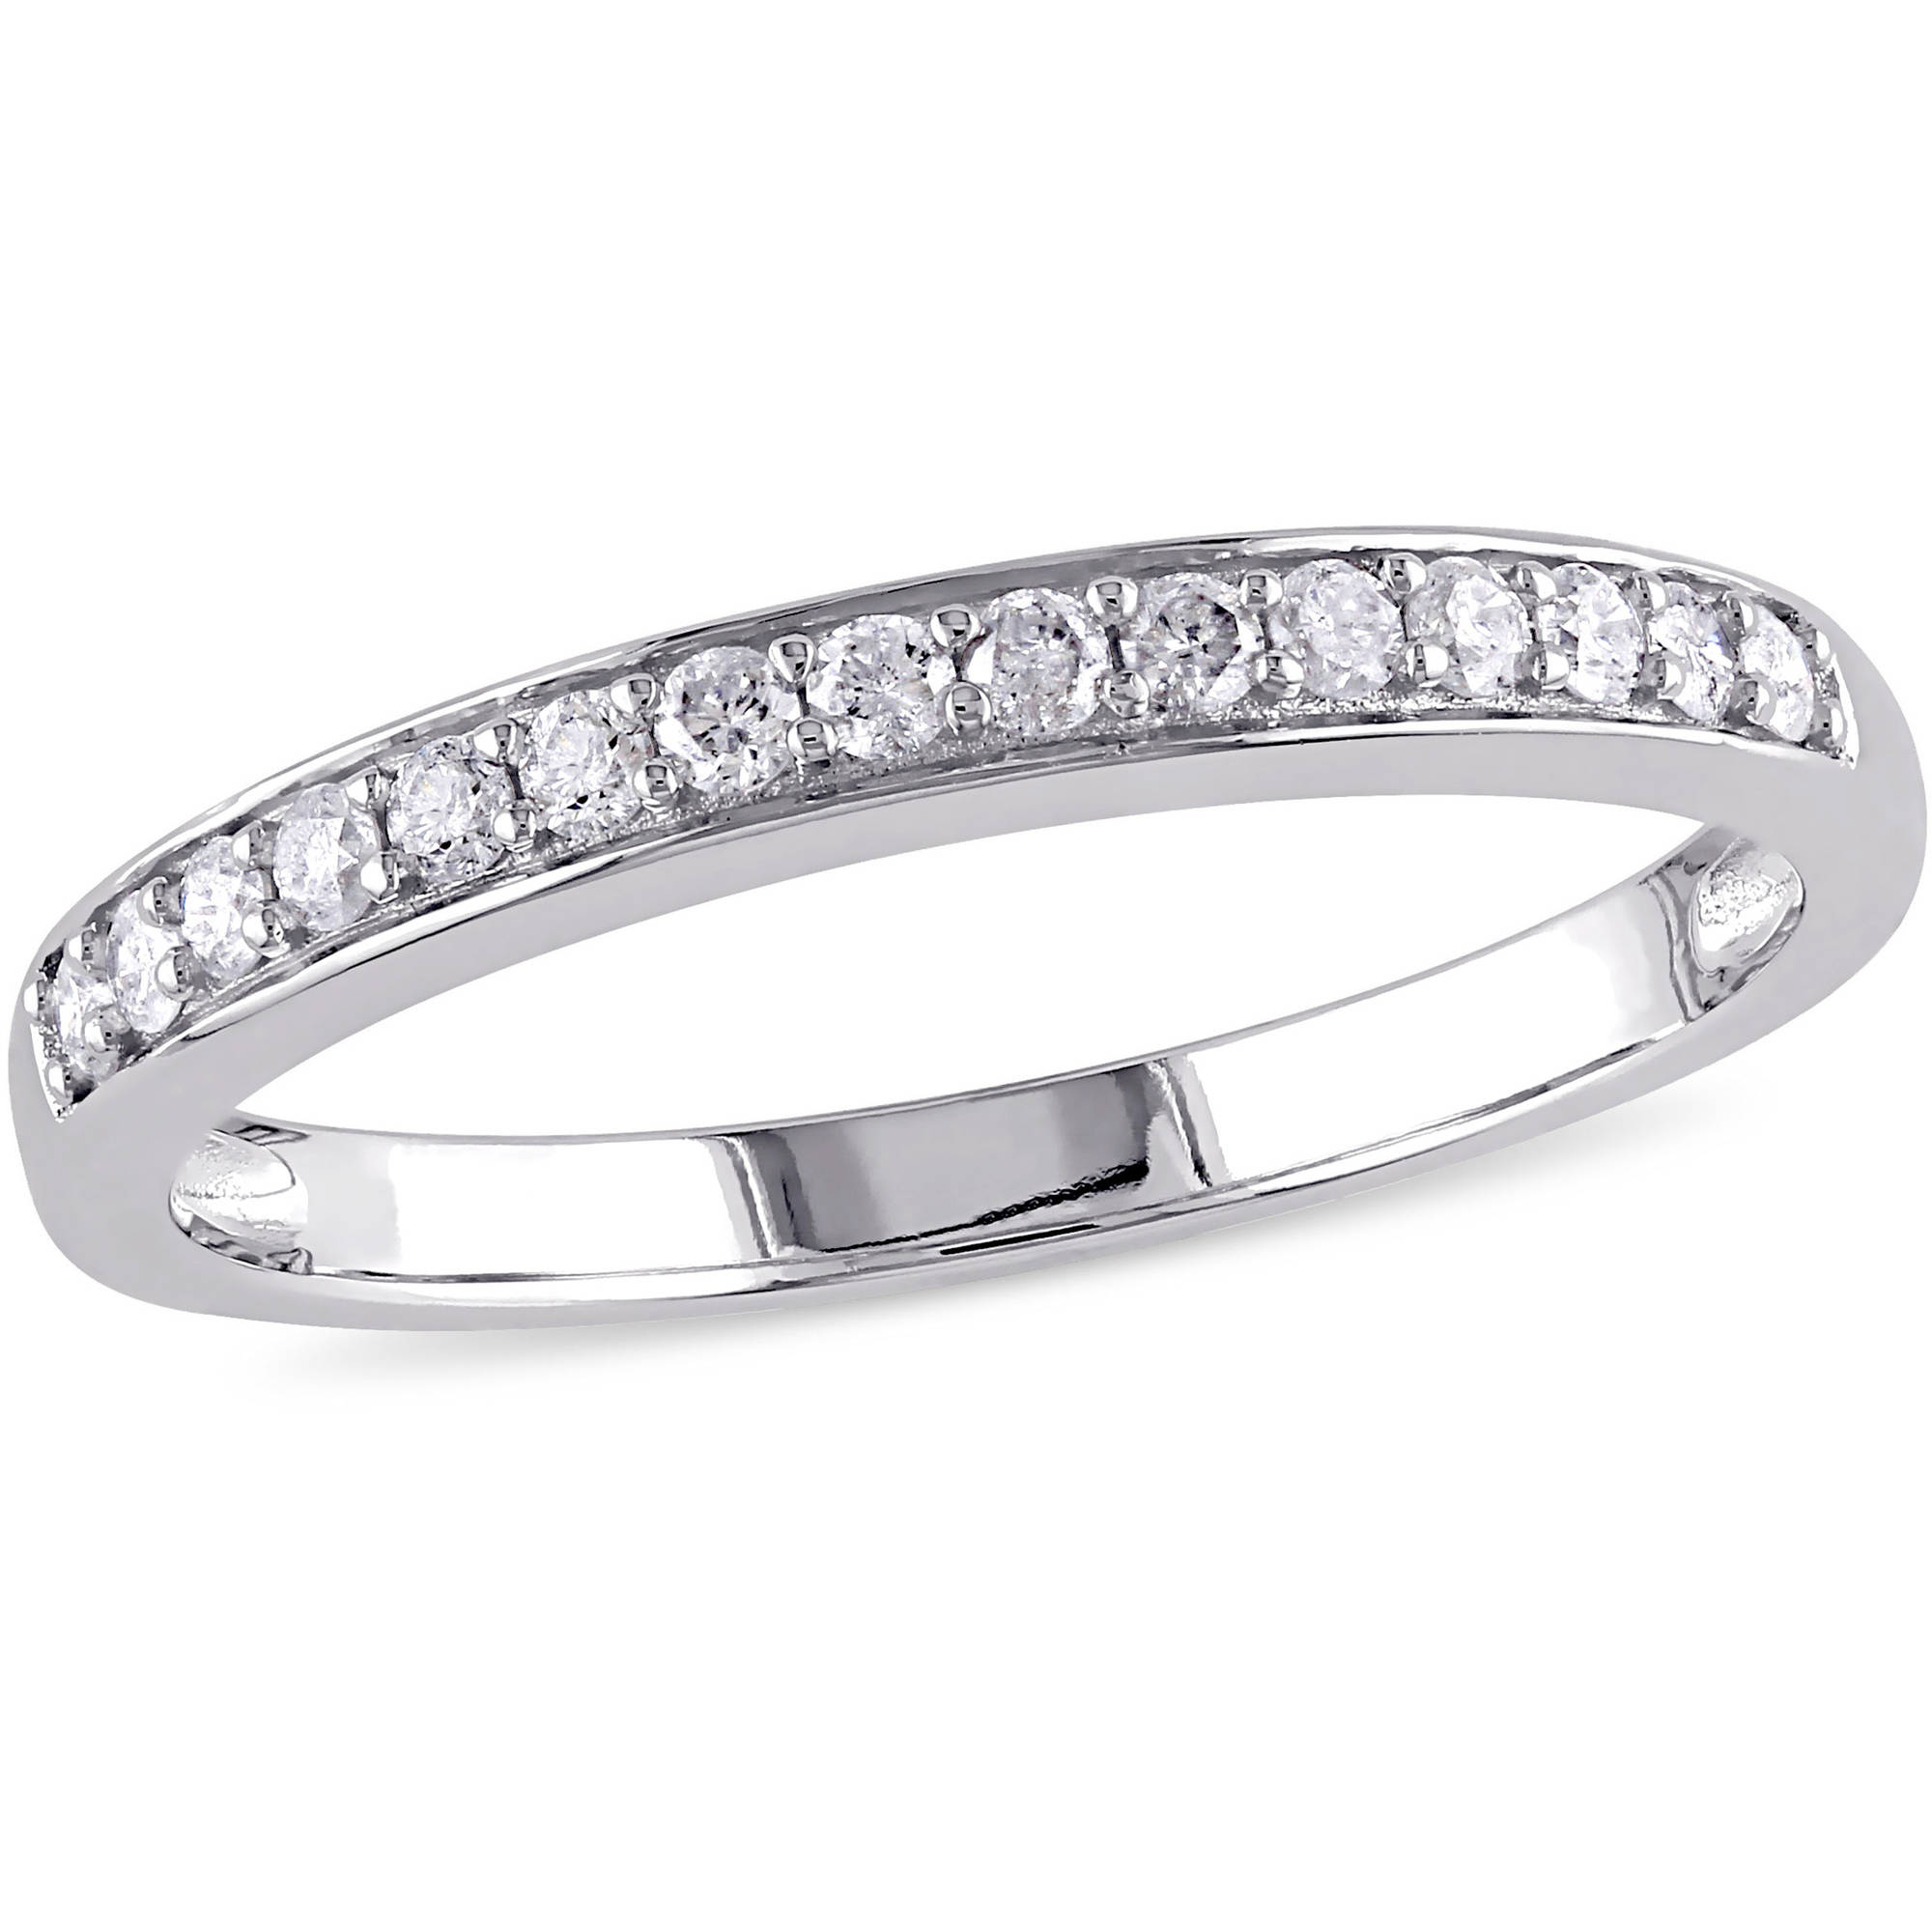 Miabella 1 5 Carat T.W. Diamond 10kt White Gold Semi-Eternity Wedding Band by Miabella